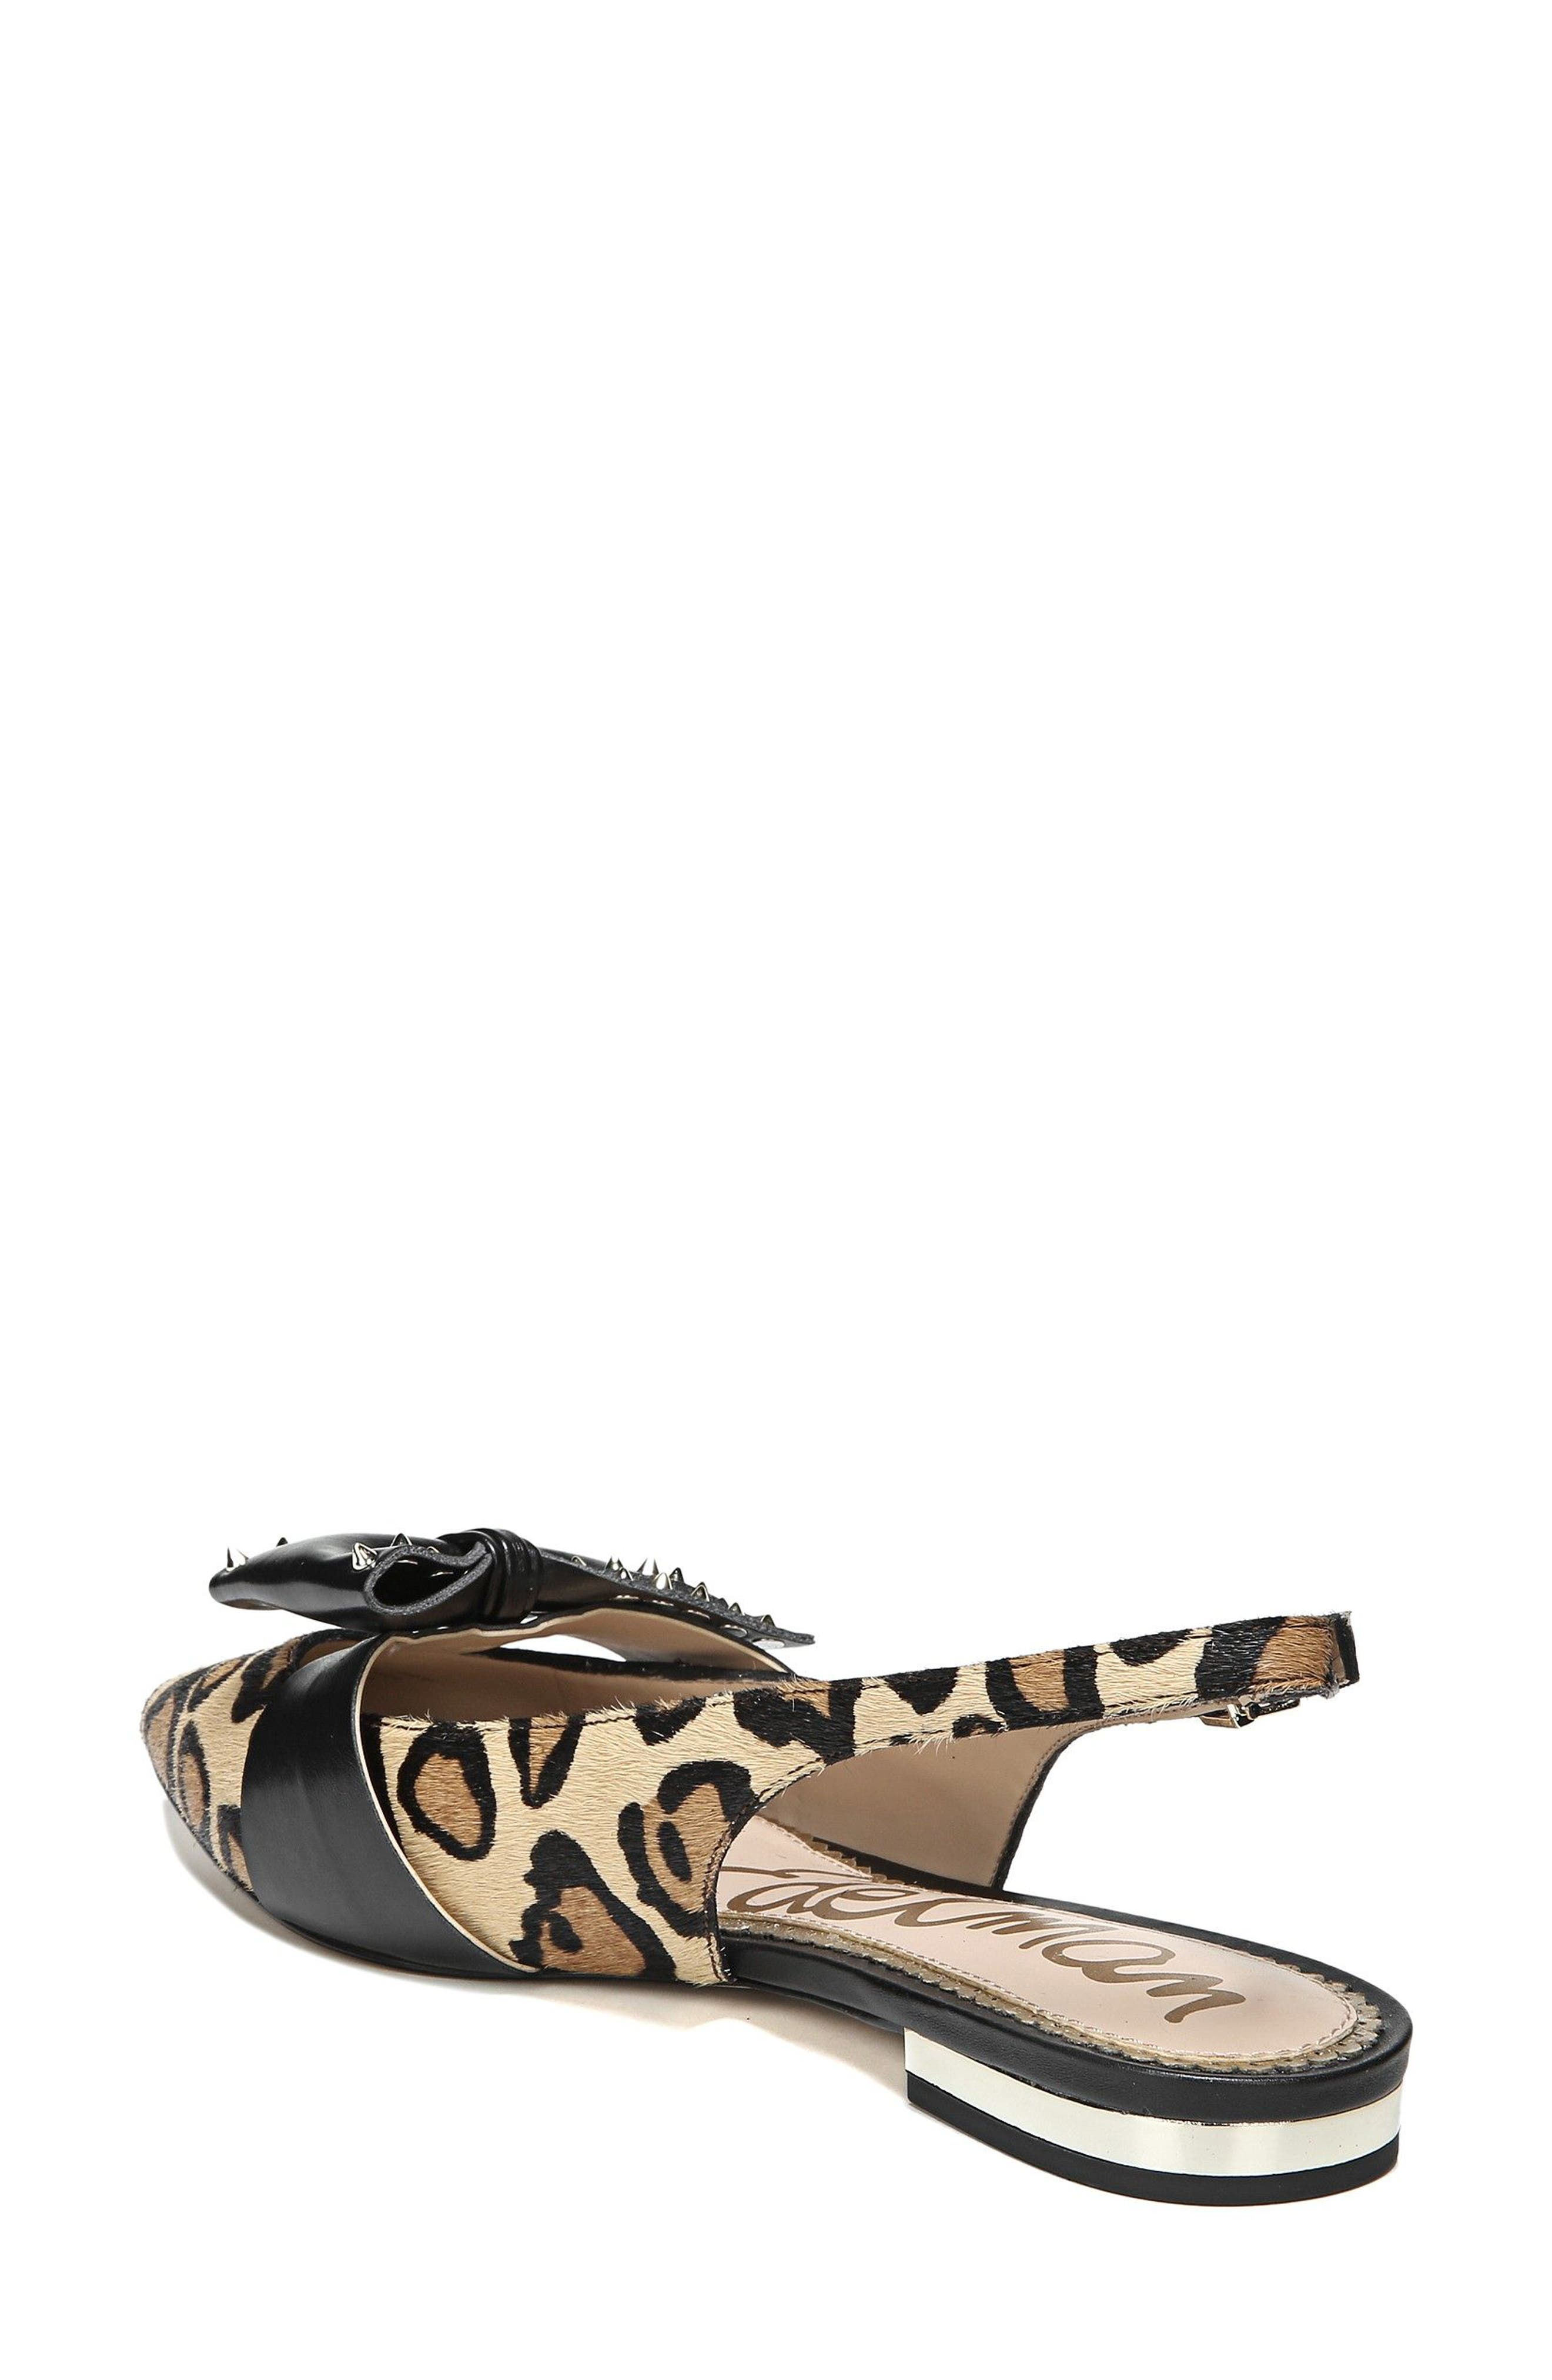 Rupert Bow Pointy Toe Flat,                             Alternate thumbnail 2, color,                             001